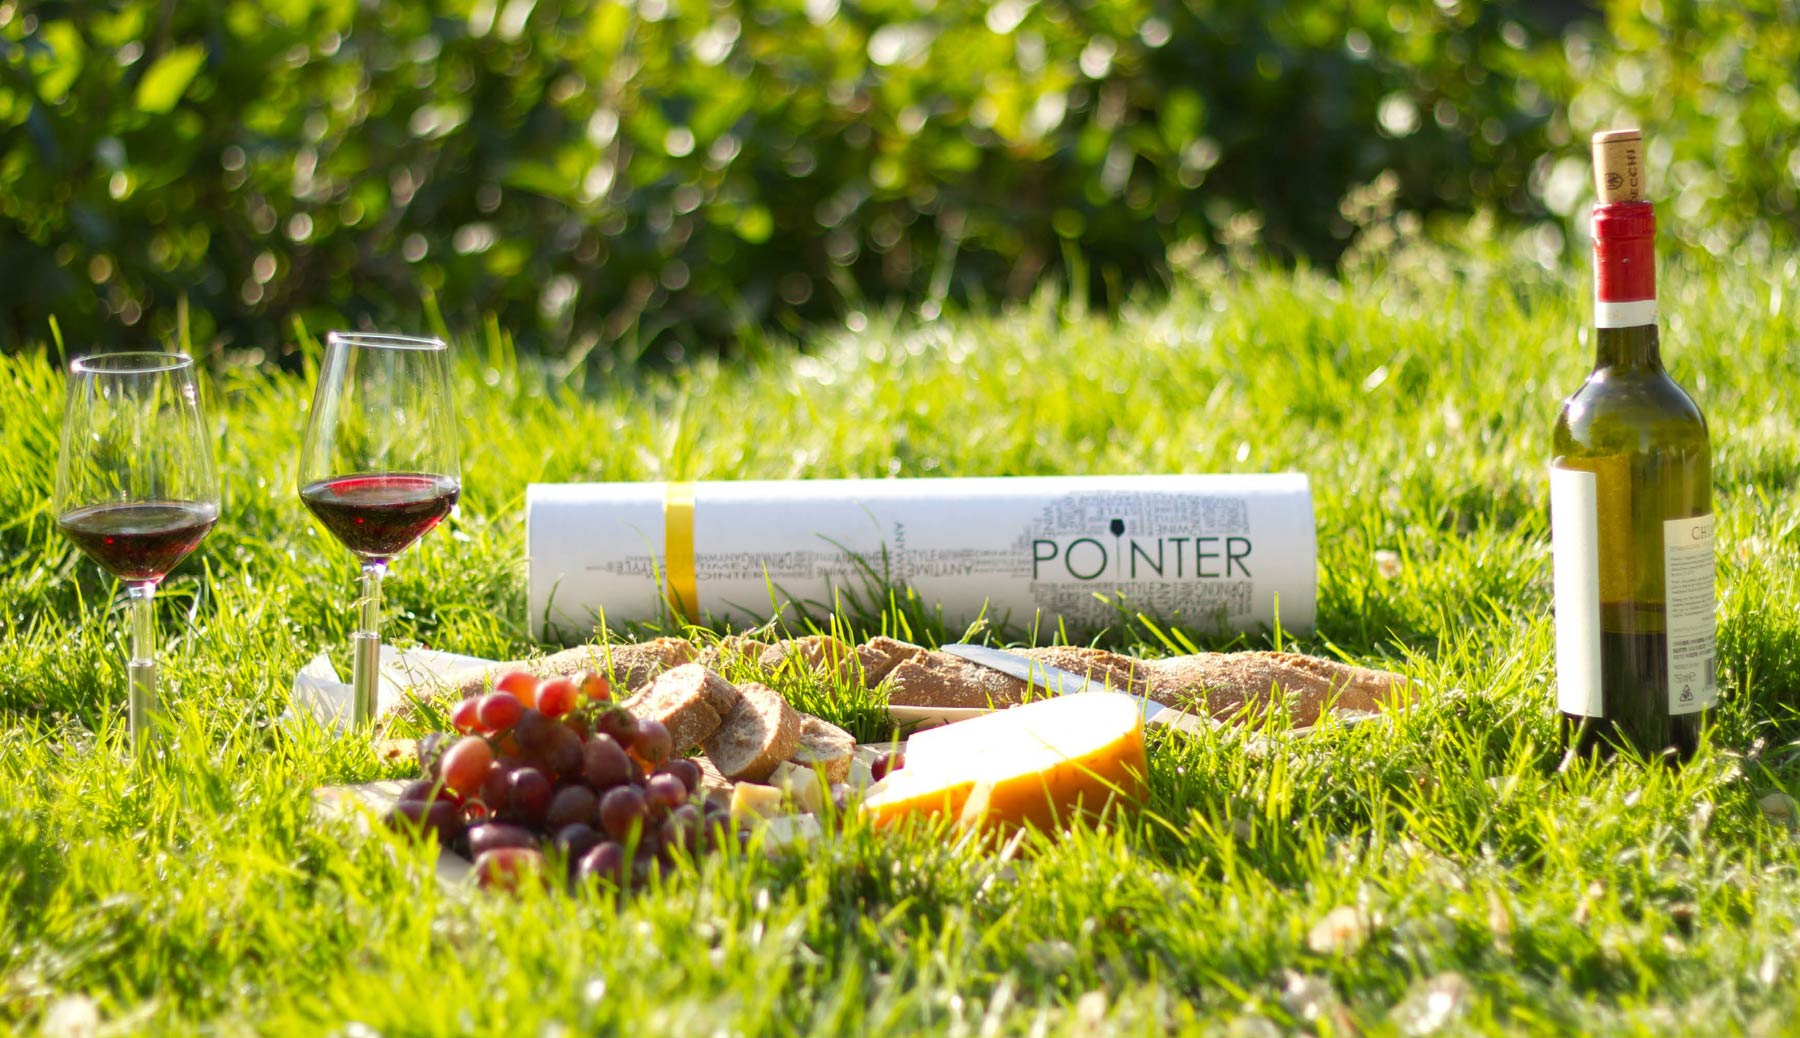 Photo of a picnic on the grass. 2 glasses of wine are planted on the ground.